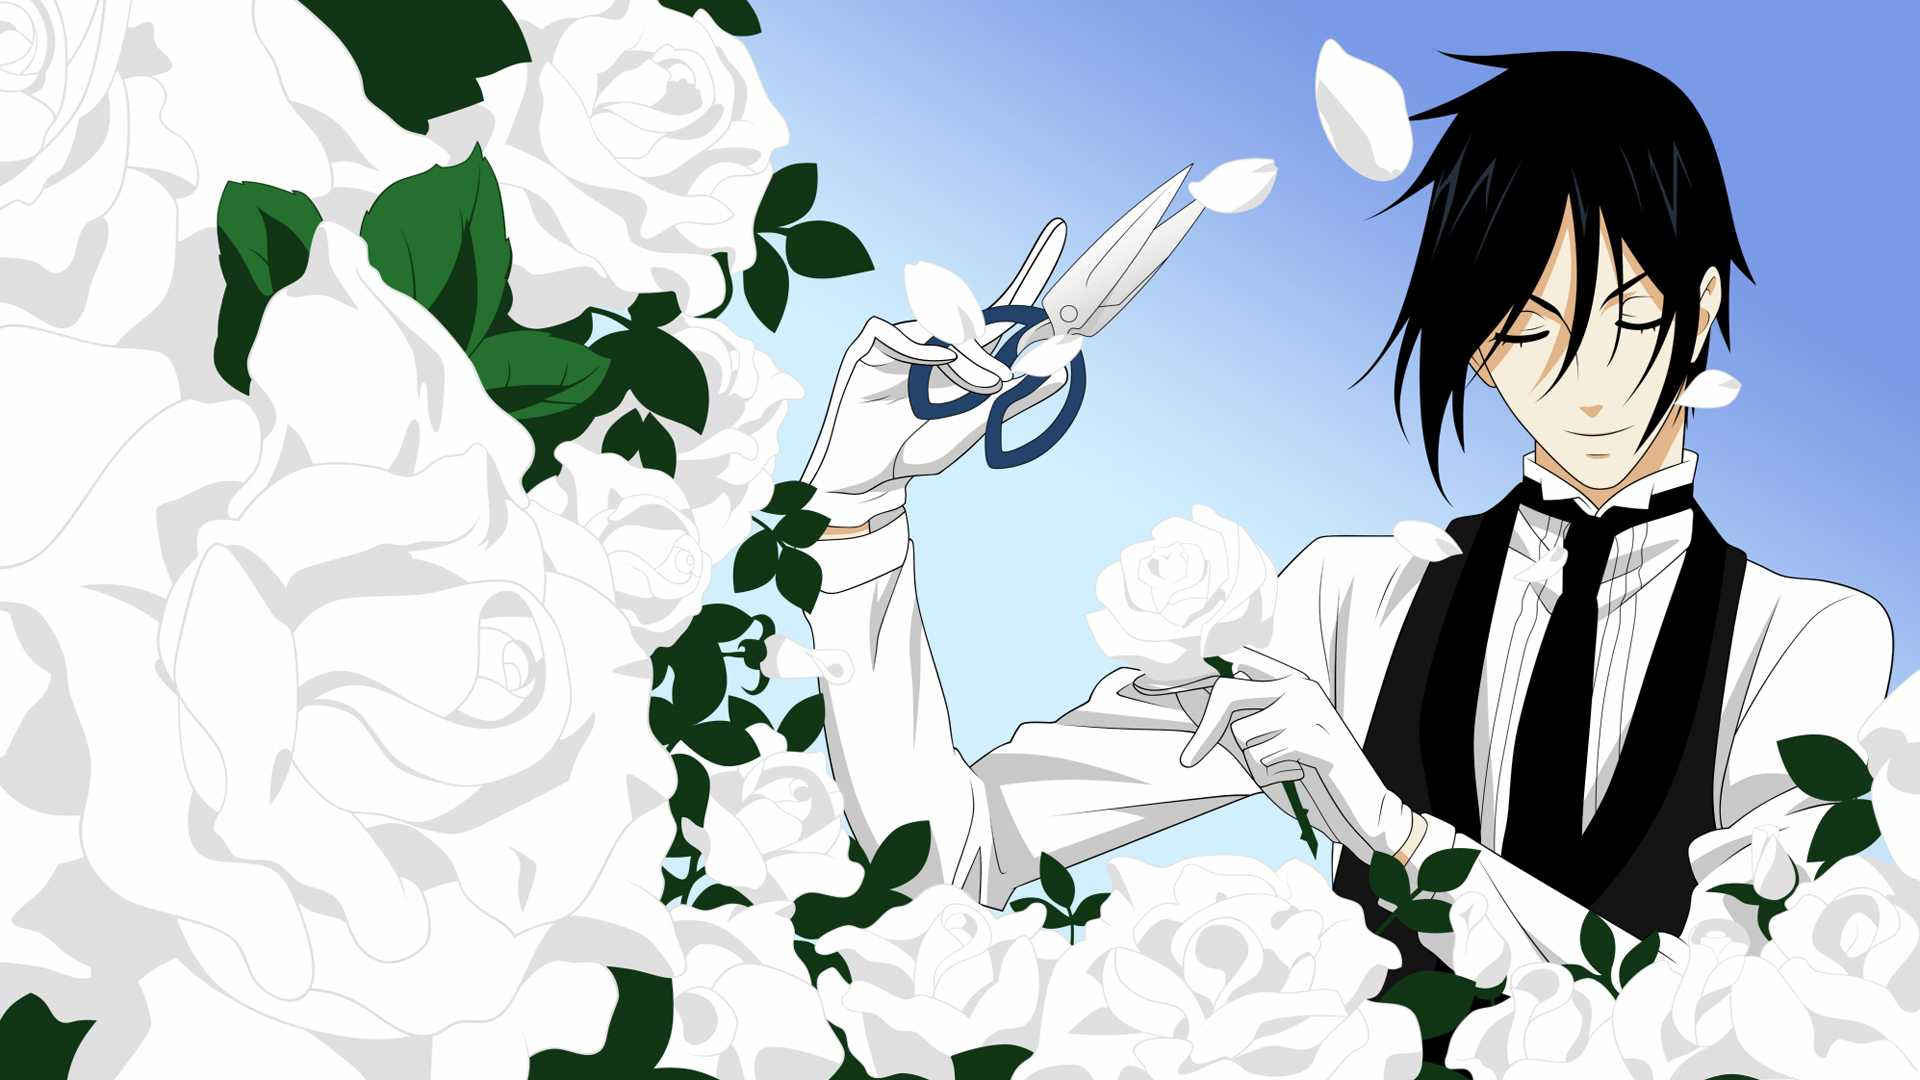 HD Sebastian Black Butler Wallpaper 1